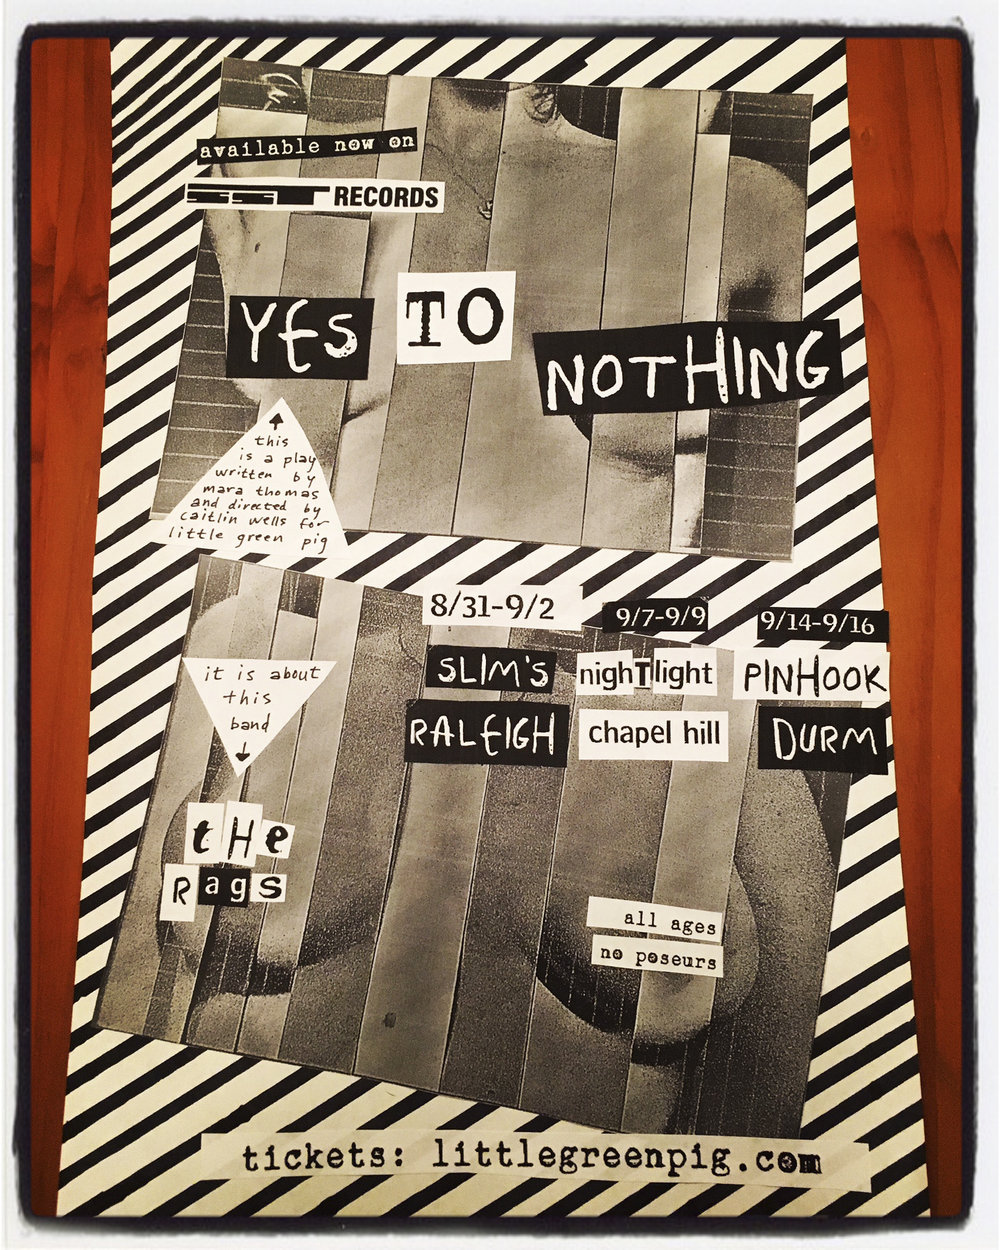 yes to nothing poster.jpg